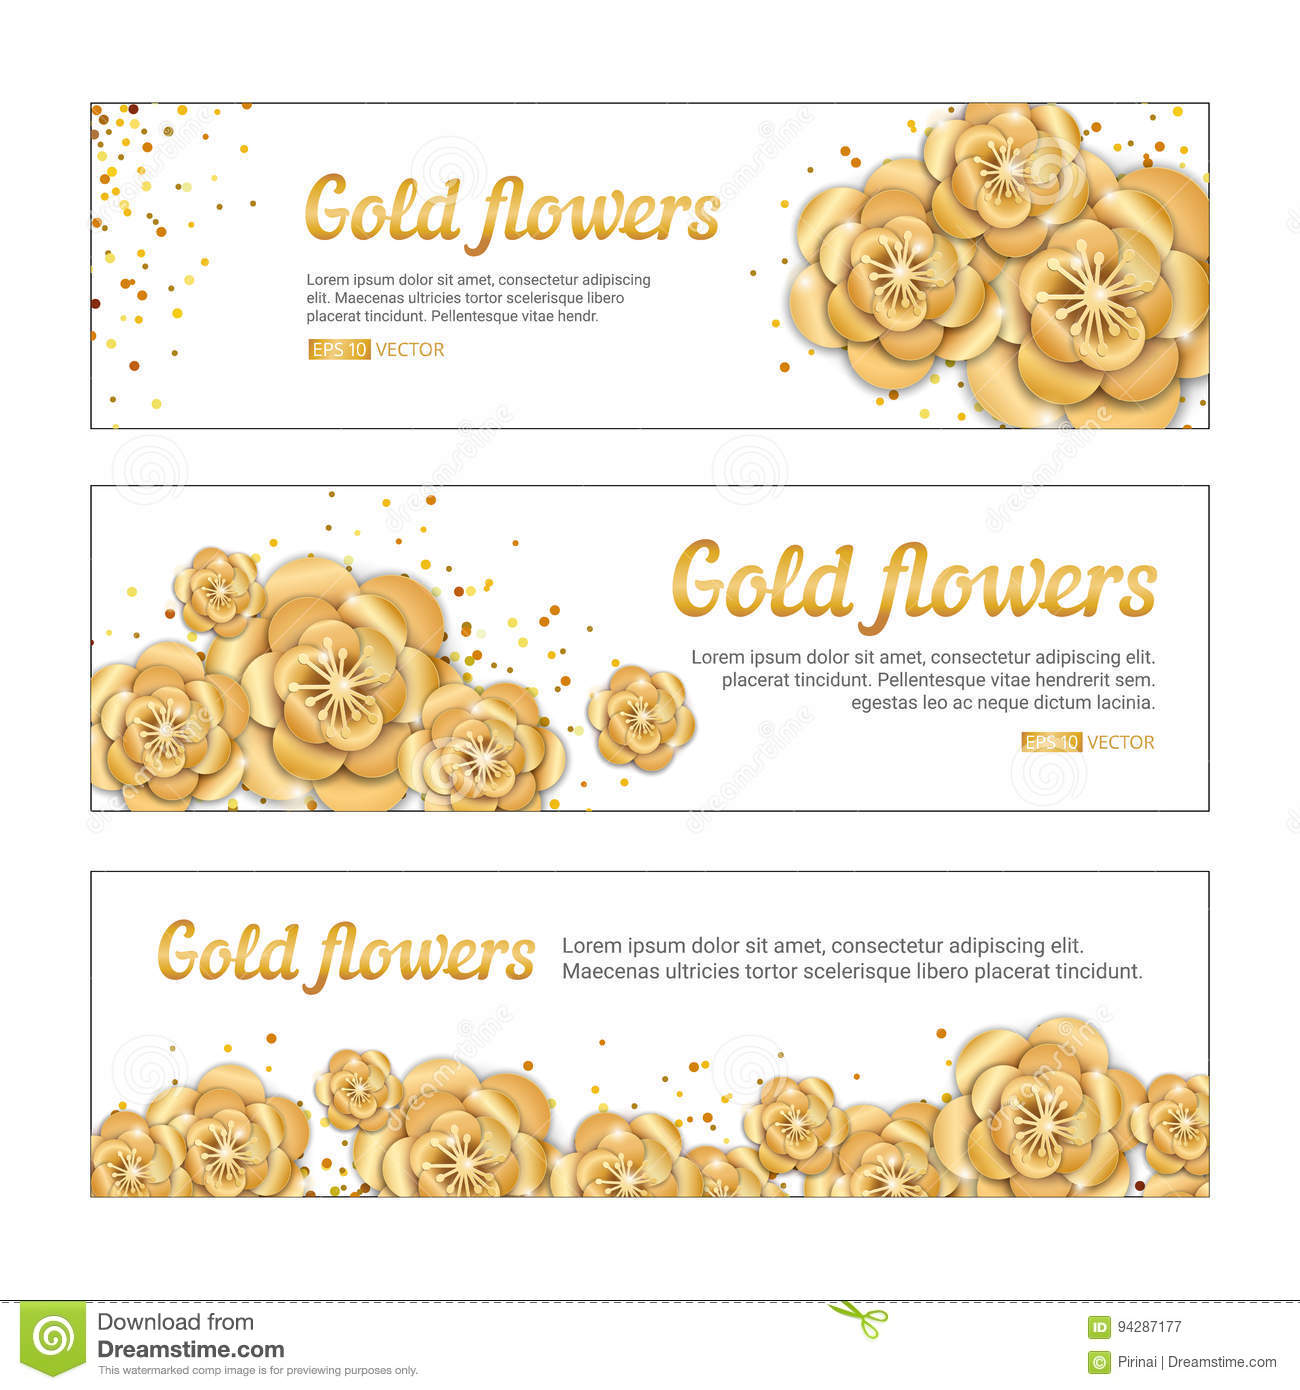 Lotus flower banner stock illustrations 3101 lotus flower banner lotus flower banner stock illustrations 3101 lotus flower banner stock illustrations vectors clipart dreamstime mightylinksfo